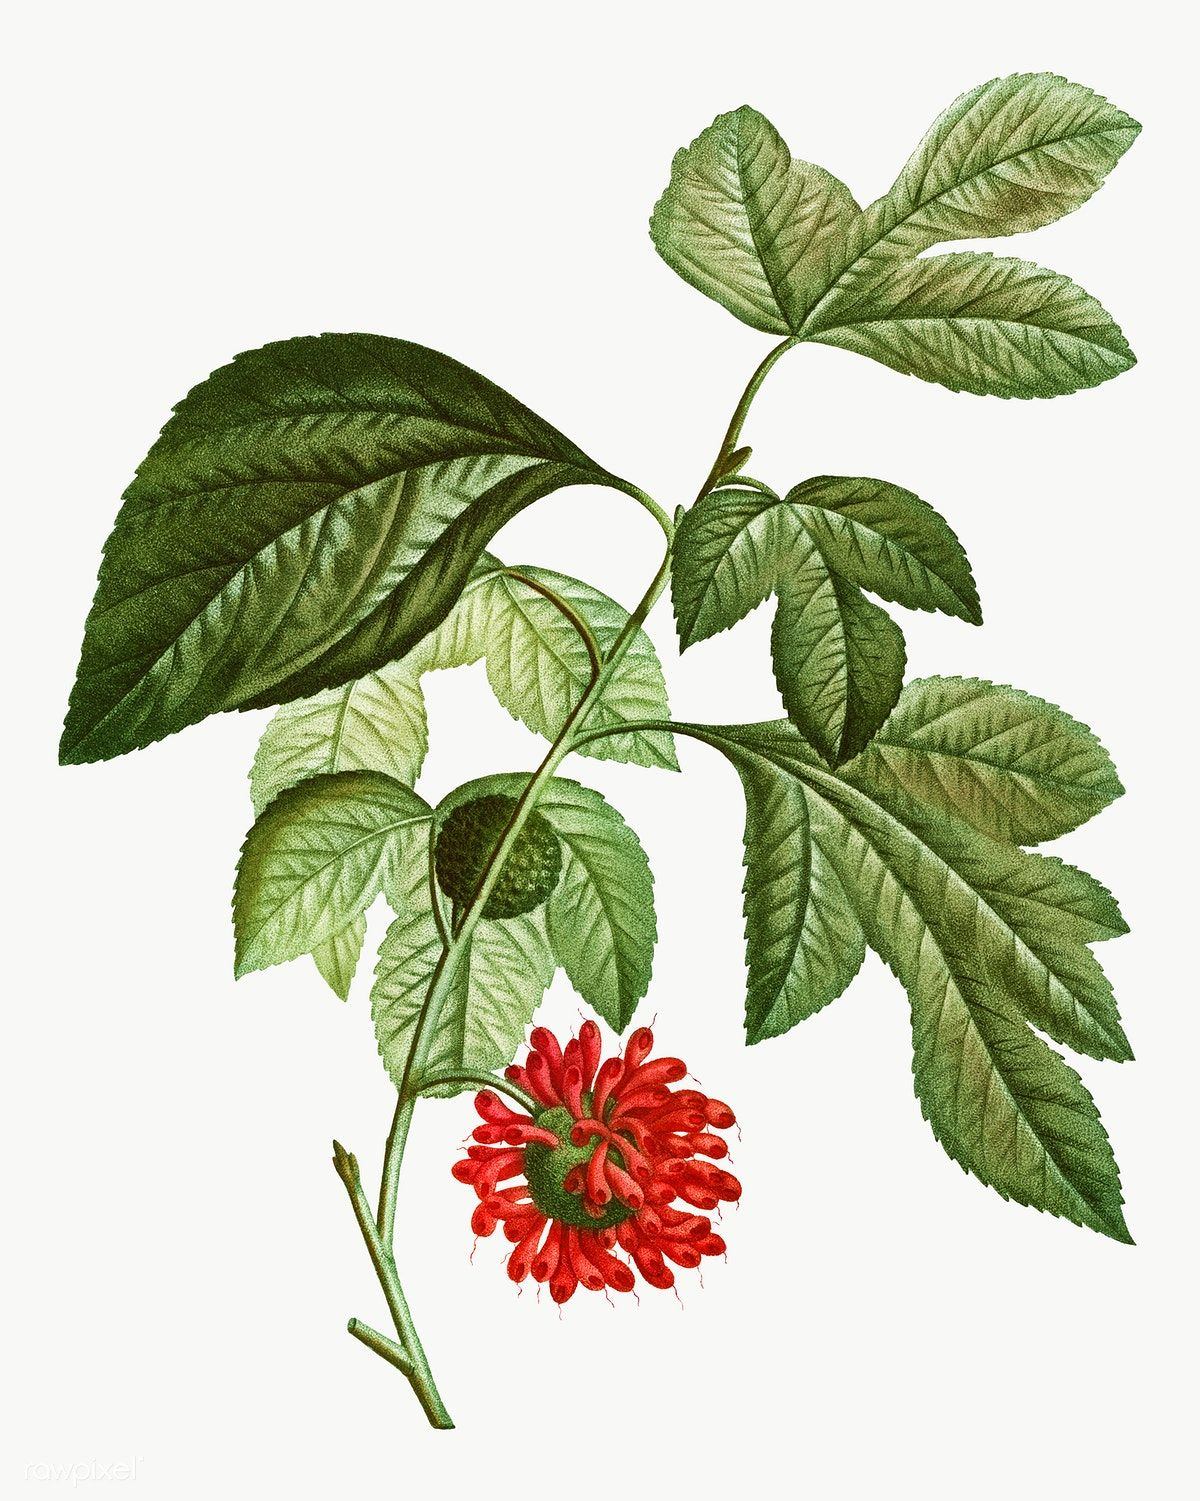 Paper Mulberry Png - Paper mulberry flower transparent png | free image by rawpixel.com ...